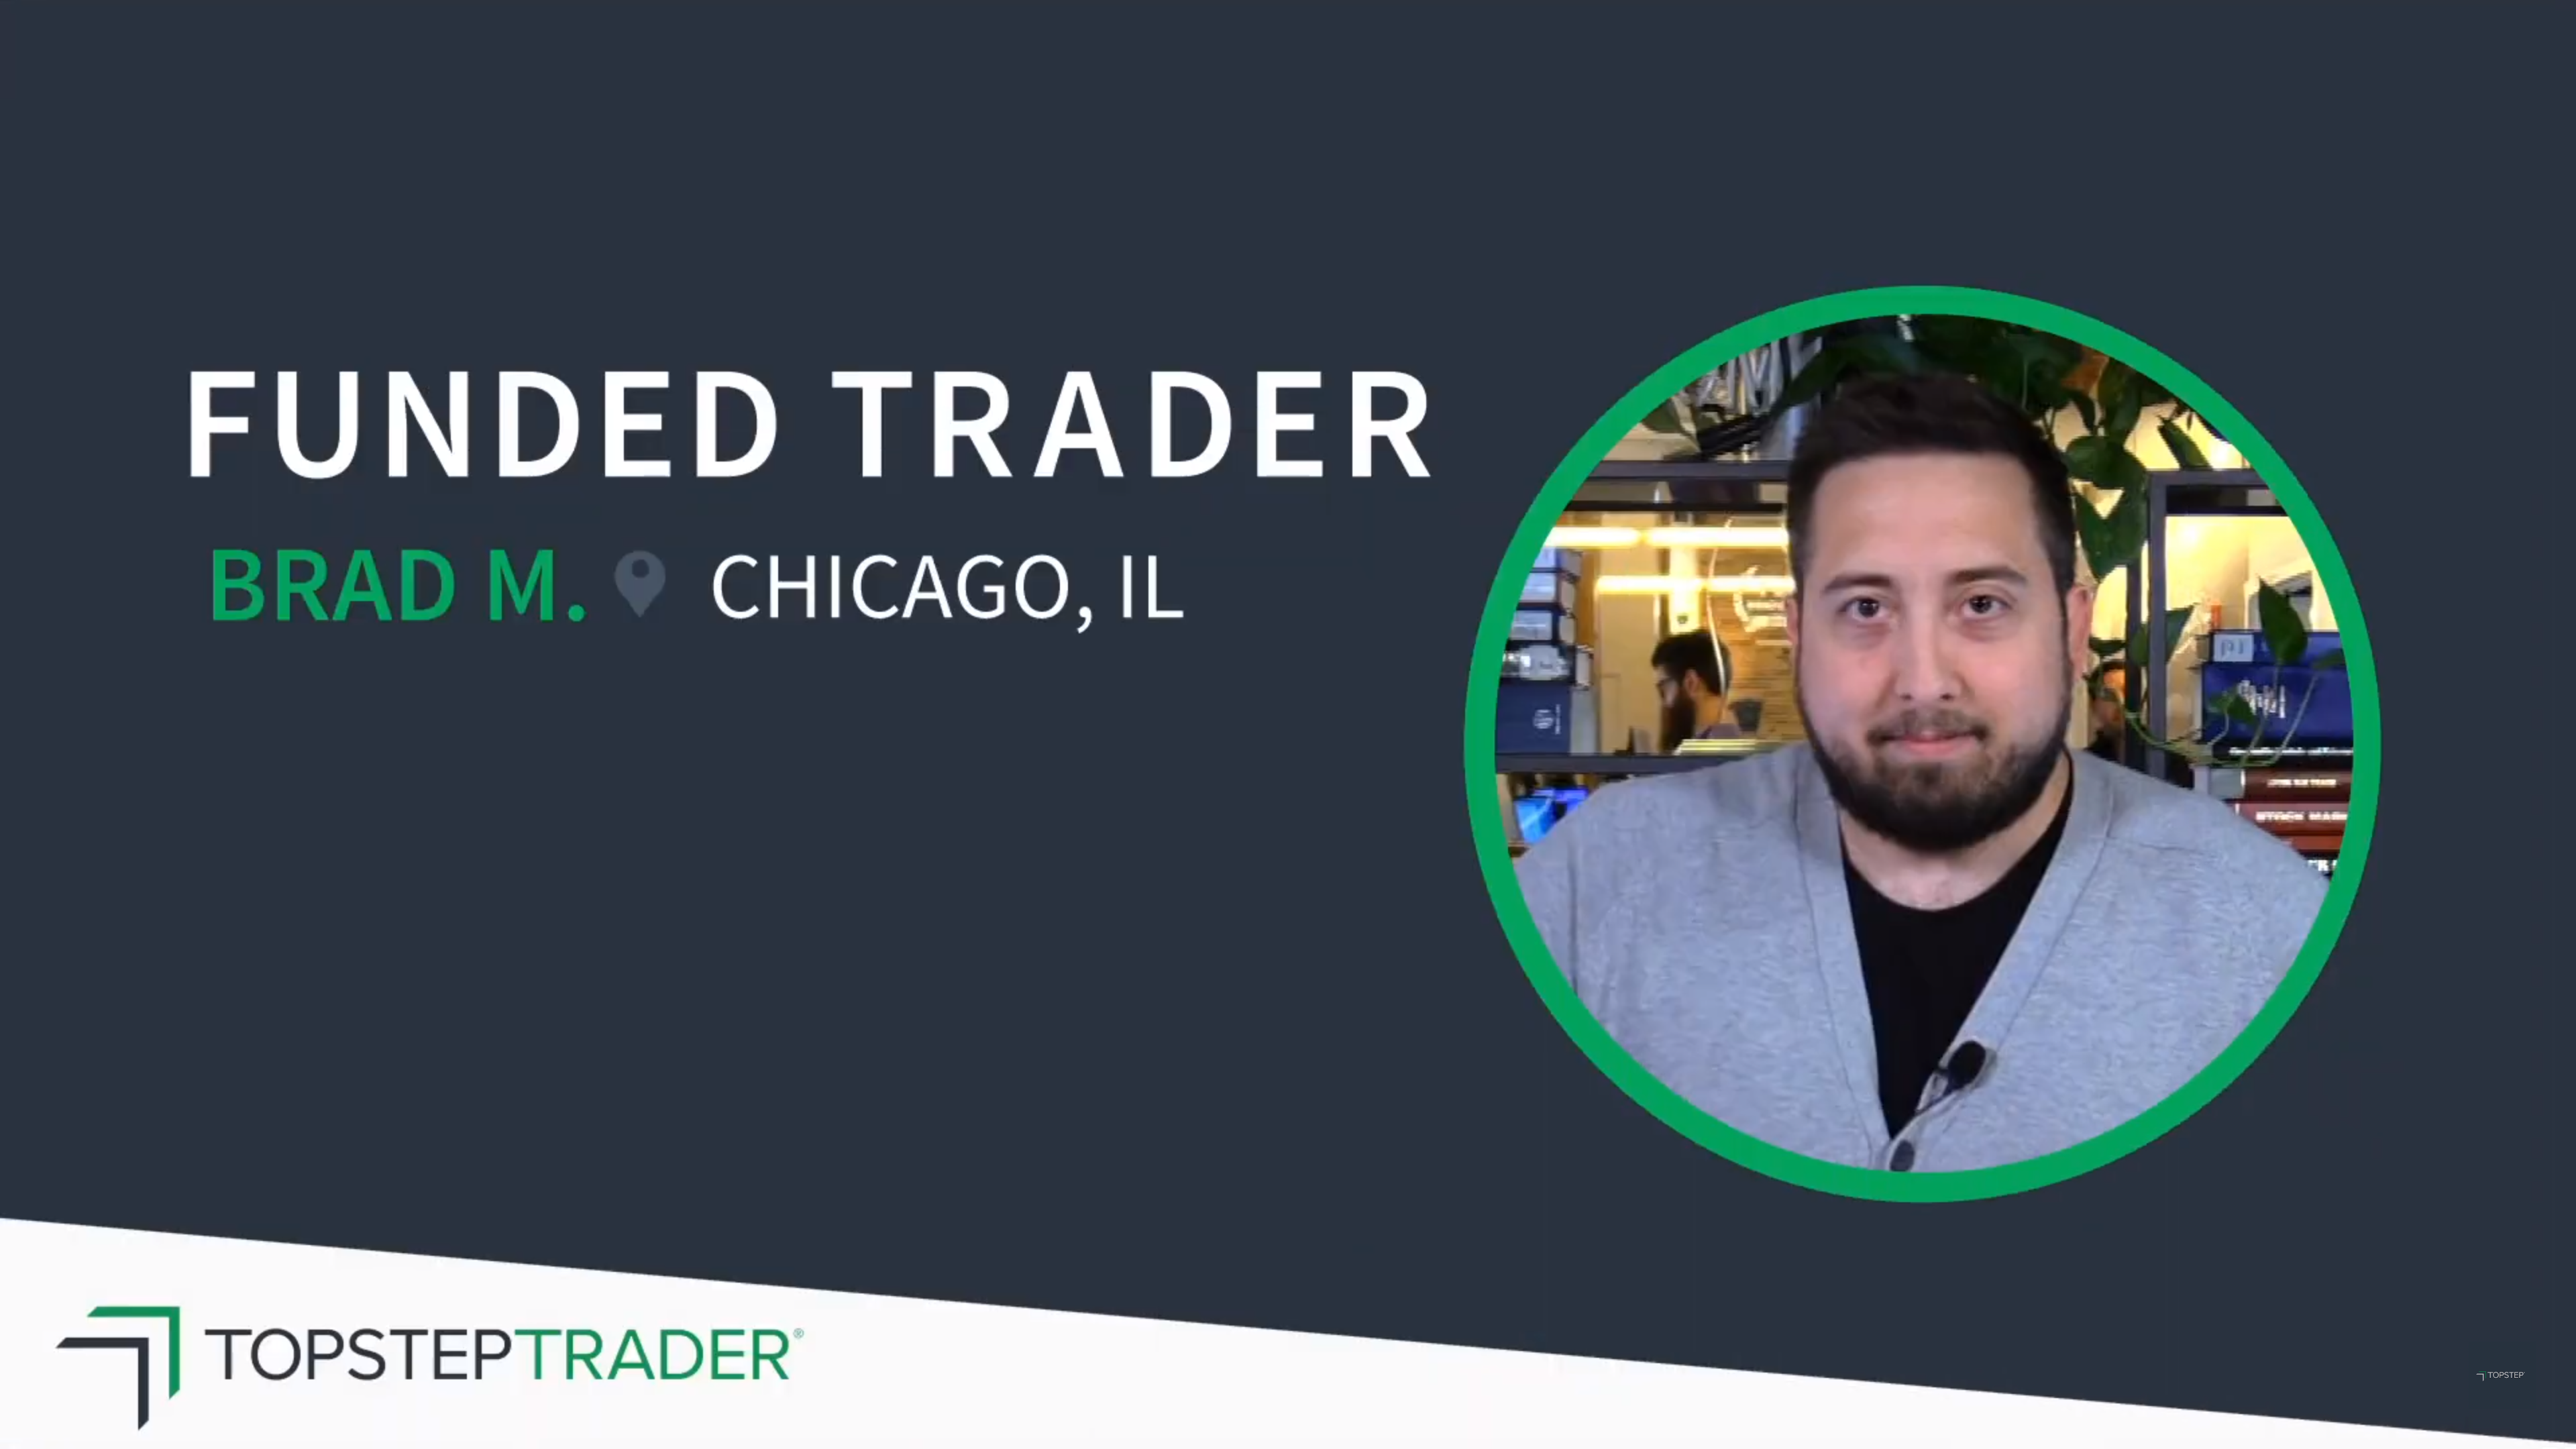 4 Questions With Funded Trader Brad M. from Chicago